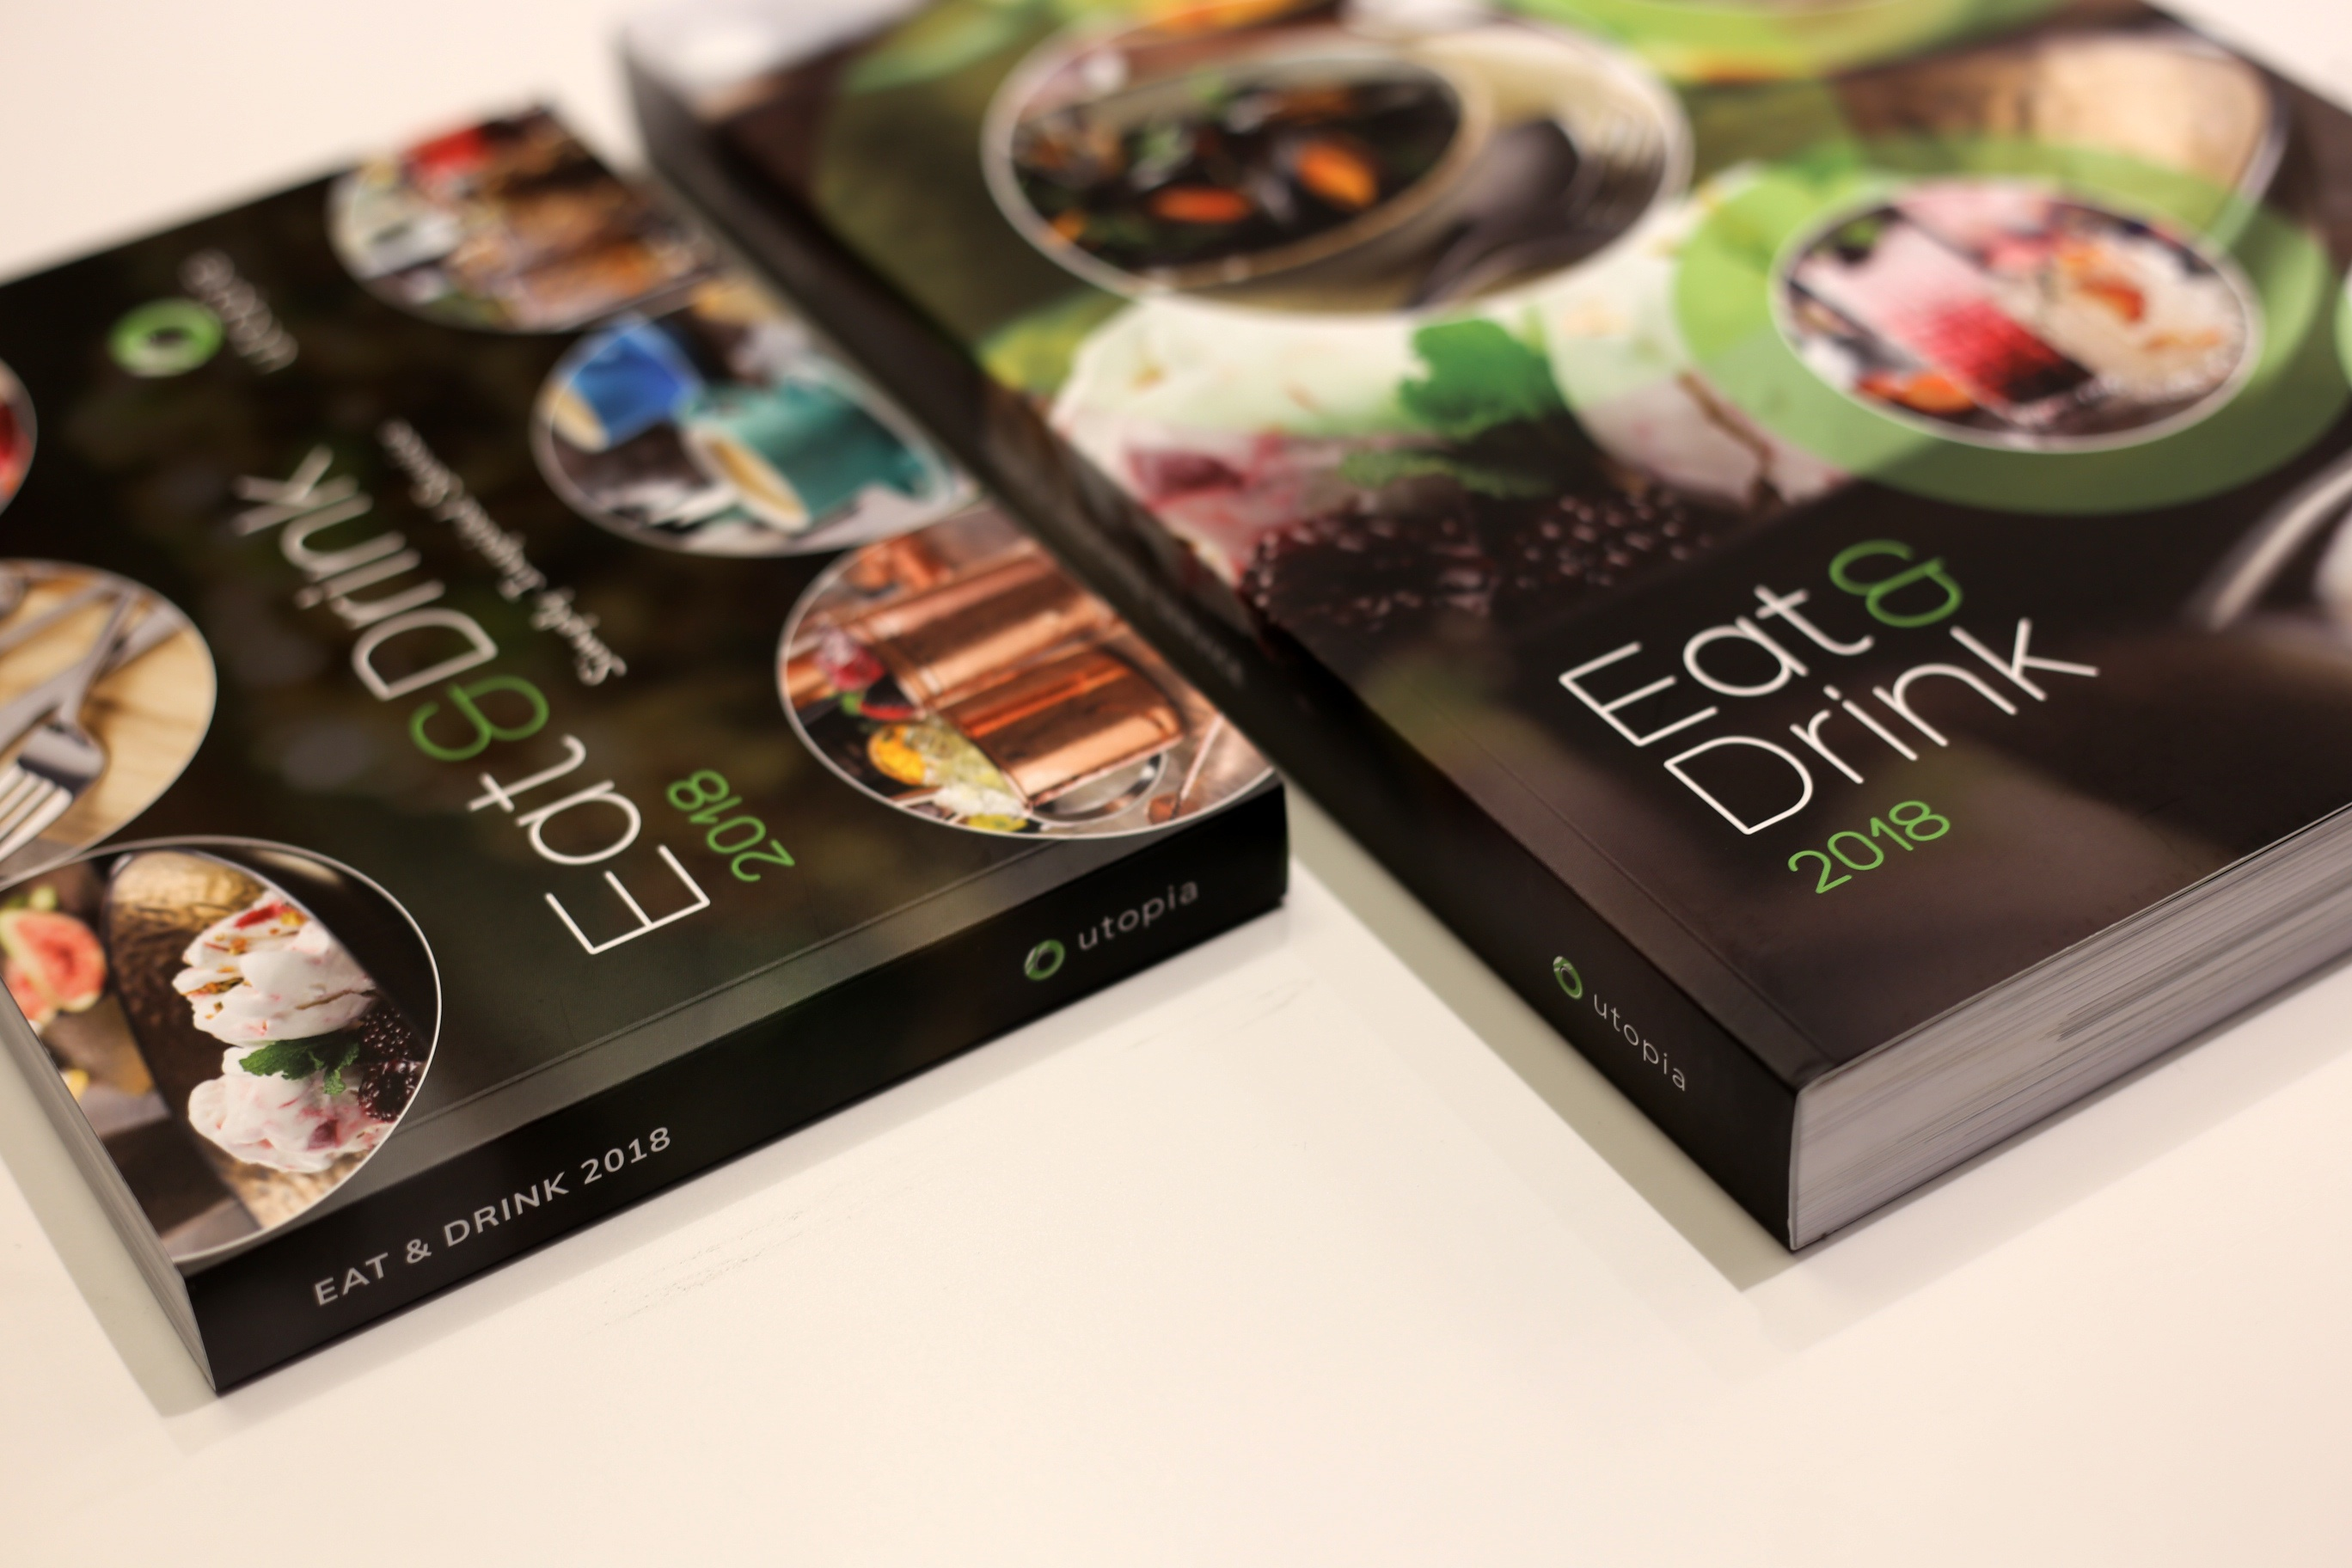 A5 and A4 eat and drink brochure's side by side